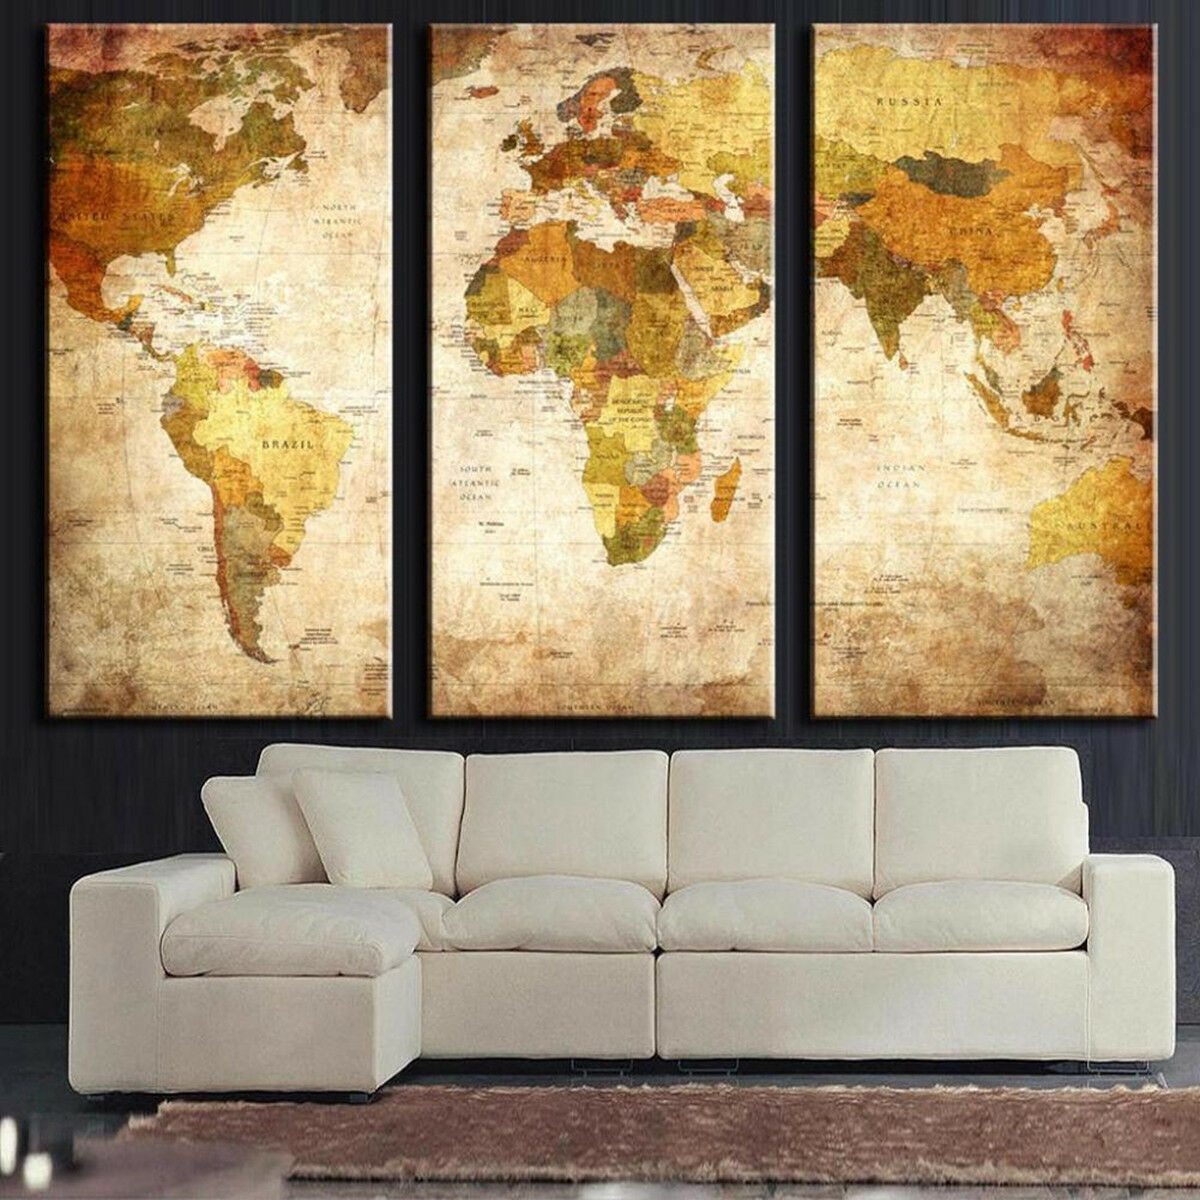 3pcs world map modern wall oil canvas painting print home decor 3pcs world map modern wall oil canvas painting print home decor unframed uk 1 of 7only 5 available gumiabroncs Gallery